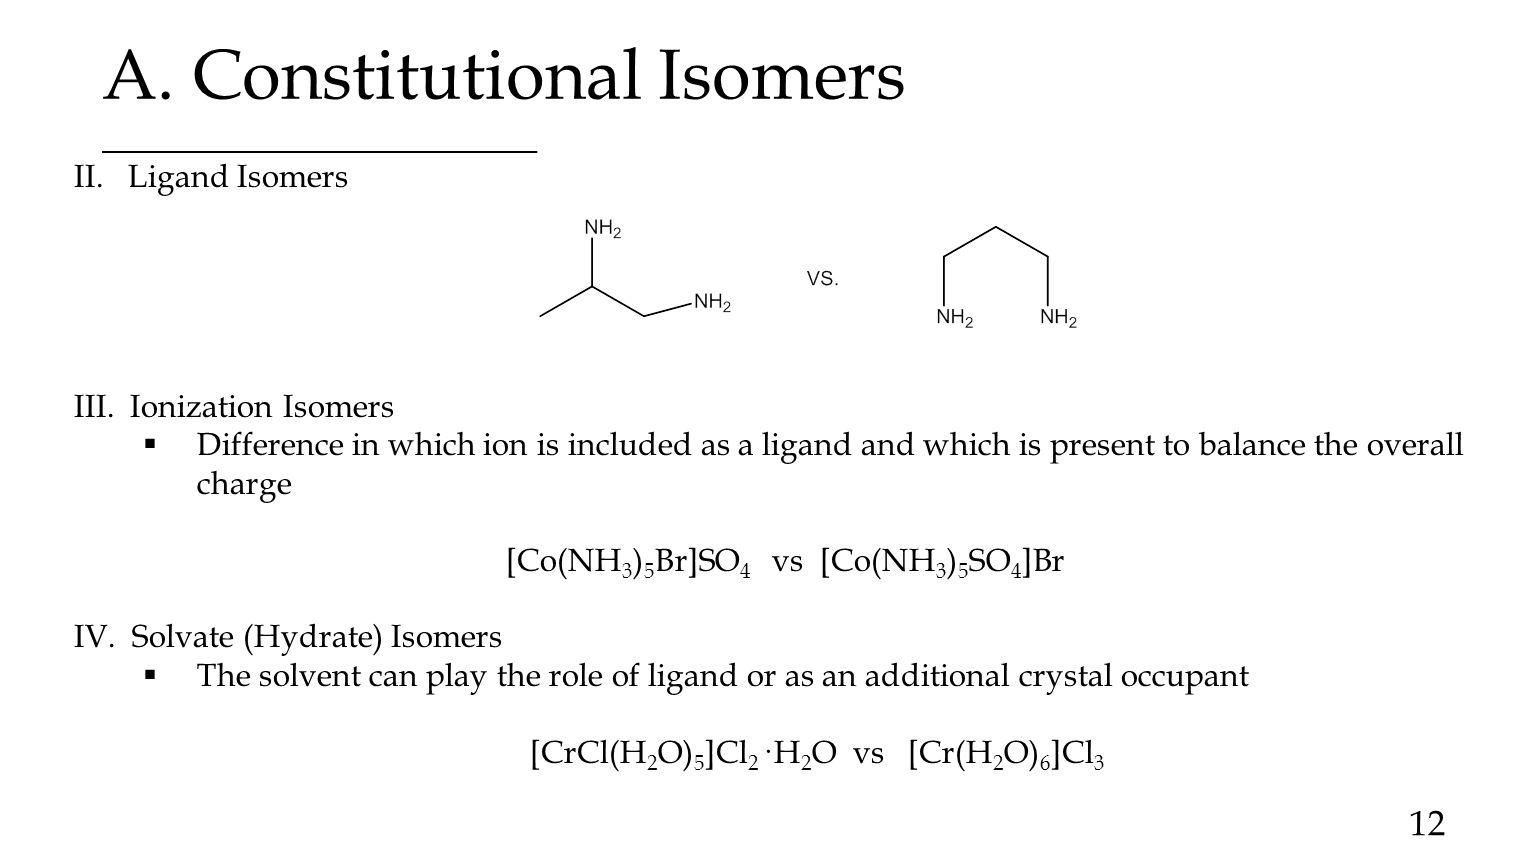 Coordination chemistry nomenclature isomerism and structure 12 a constitutional isomers gamestrikefo Gallery